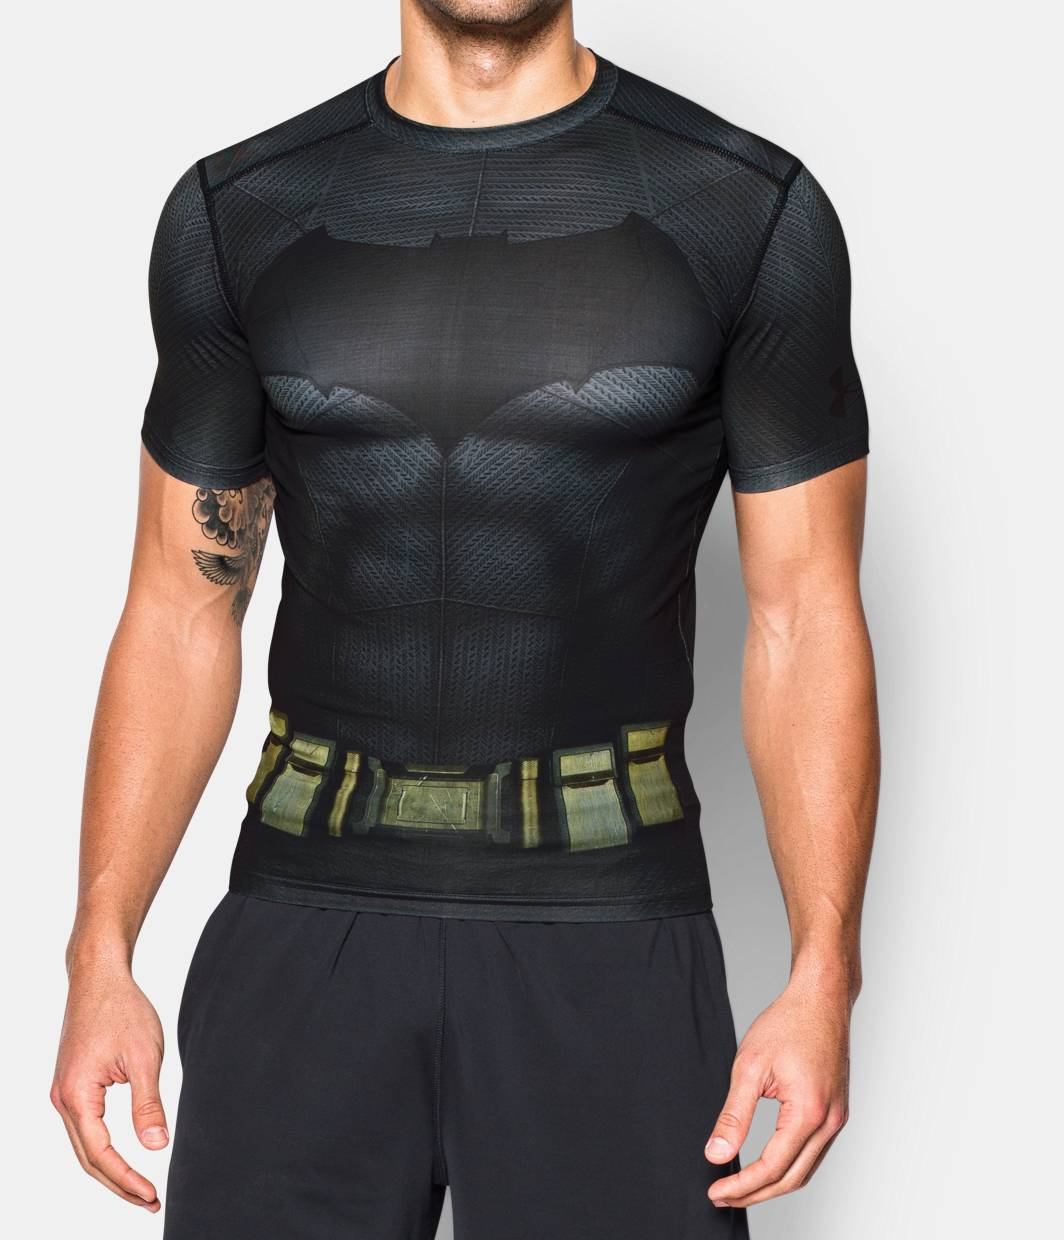 Men 39 S Under Armour Alter Ego Batman Compression Shirt